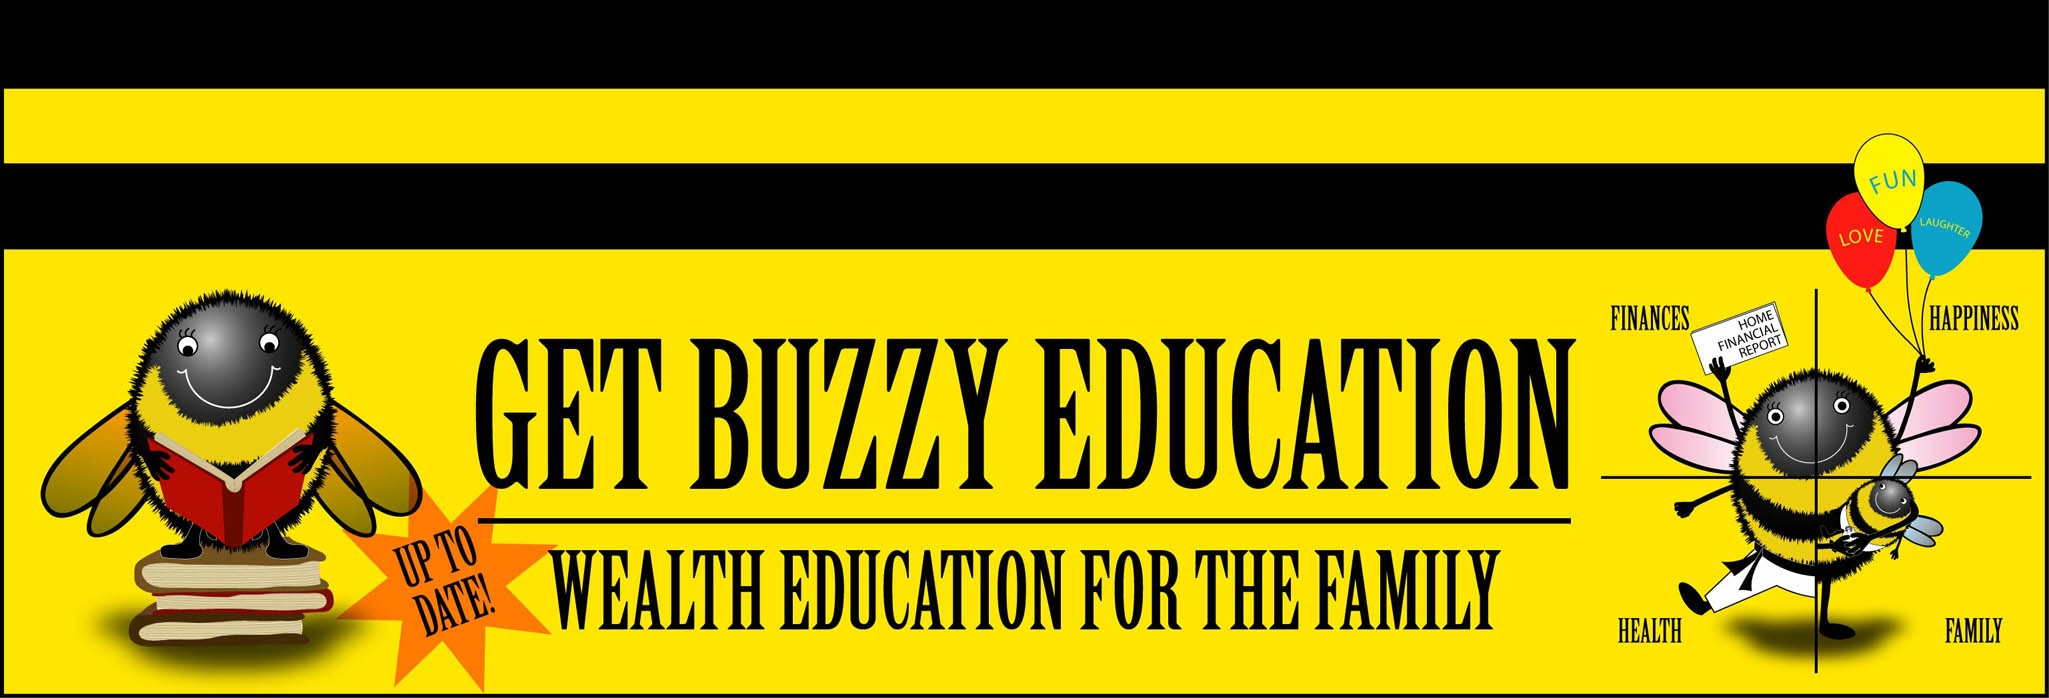 Get Buzzy wealth